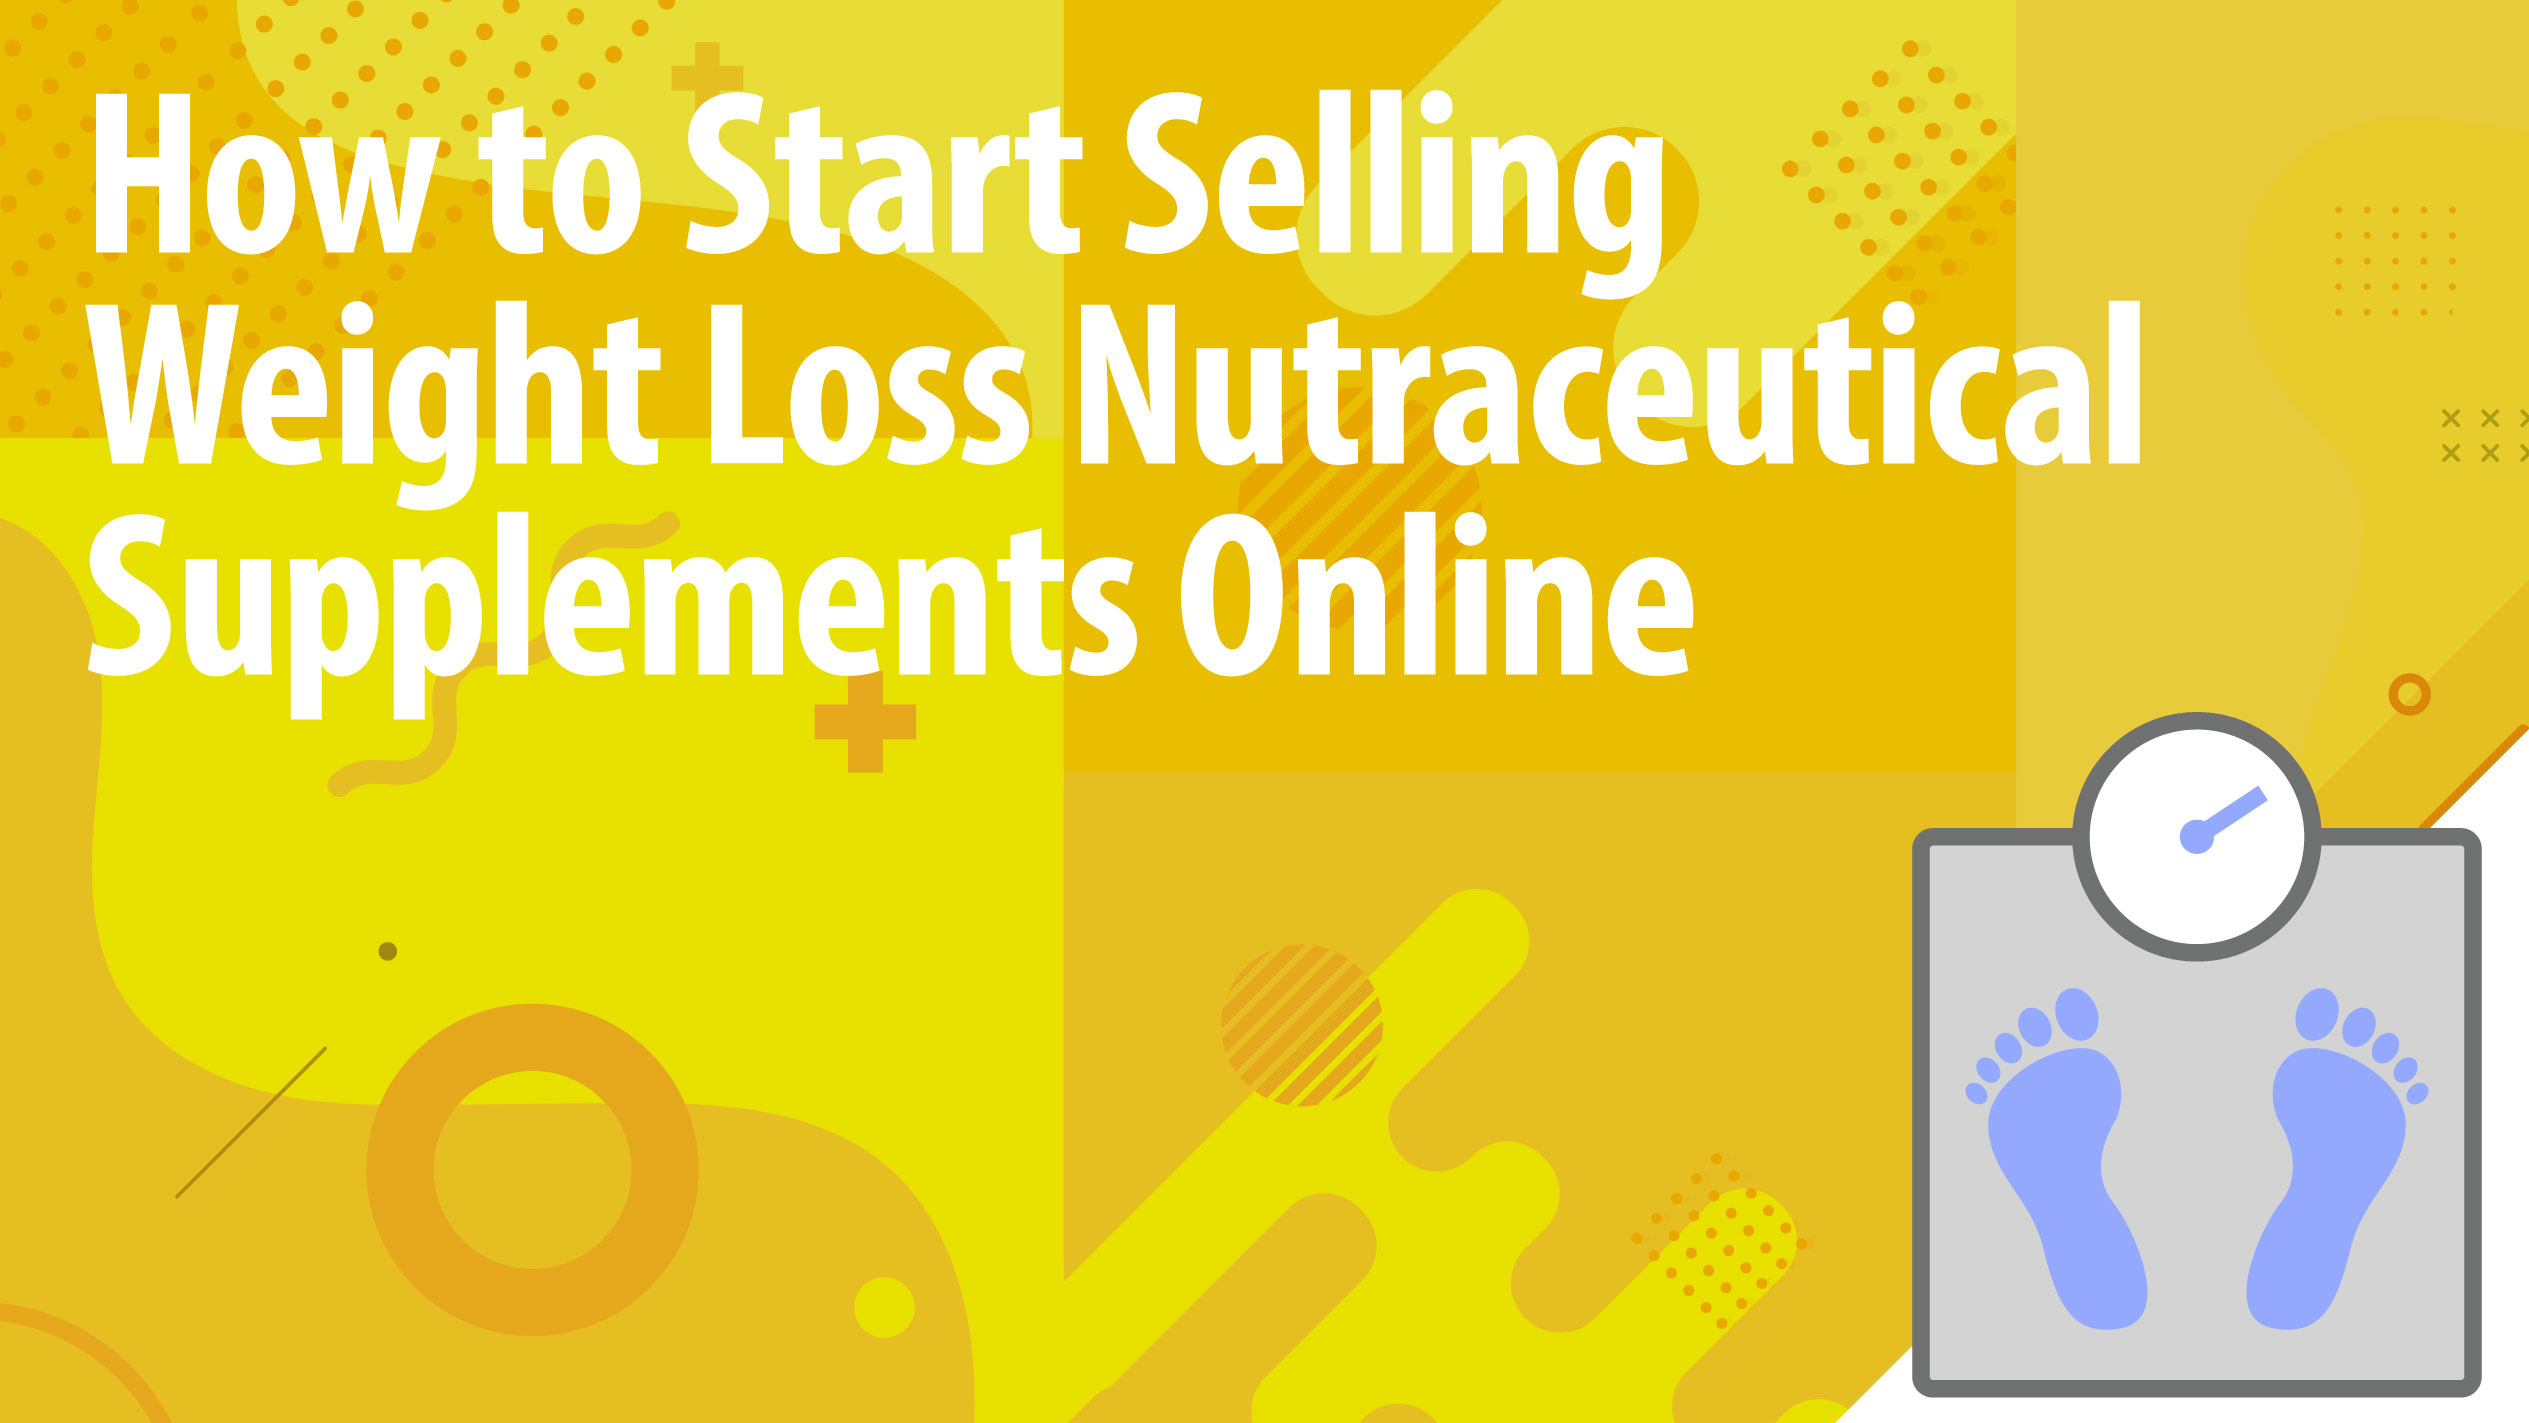 How to Start Selling Weight Loss Nutraceutical Supplements Online